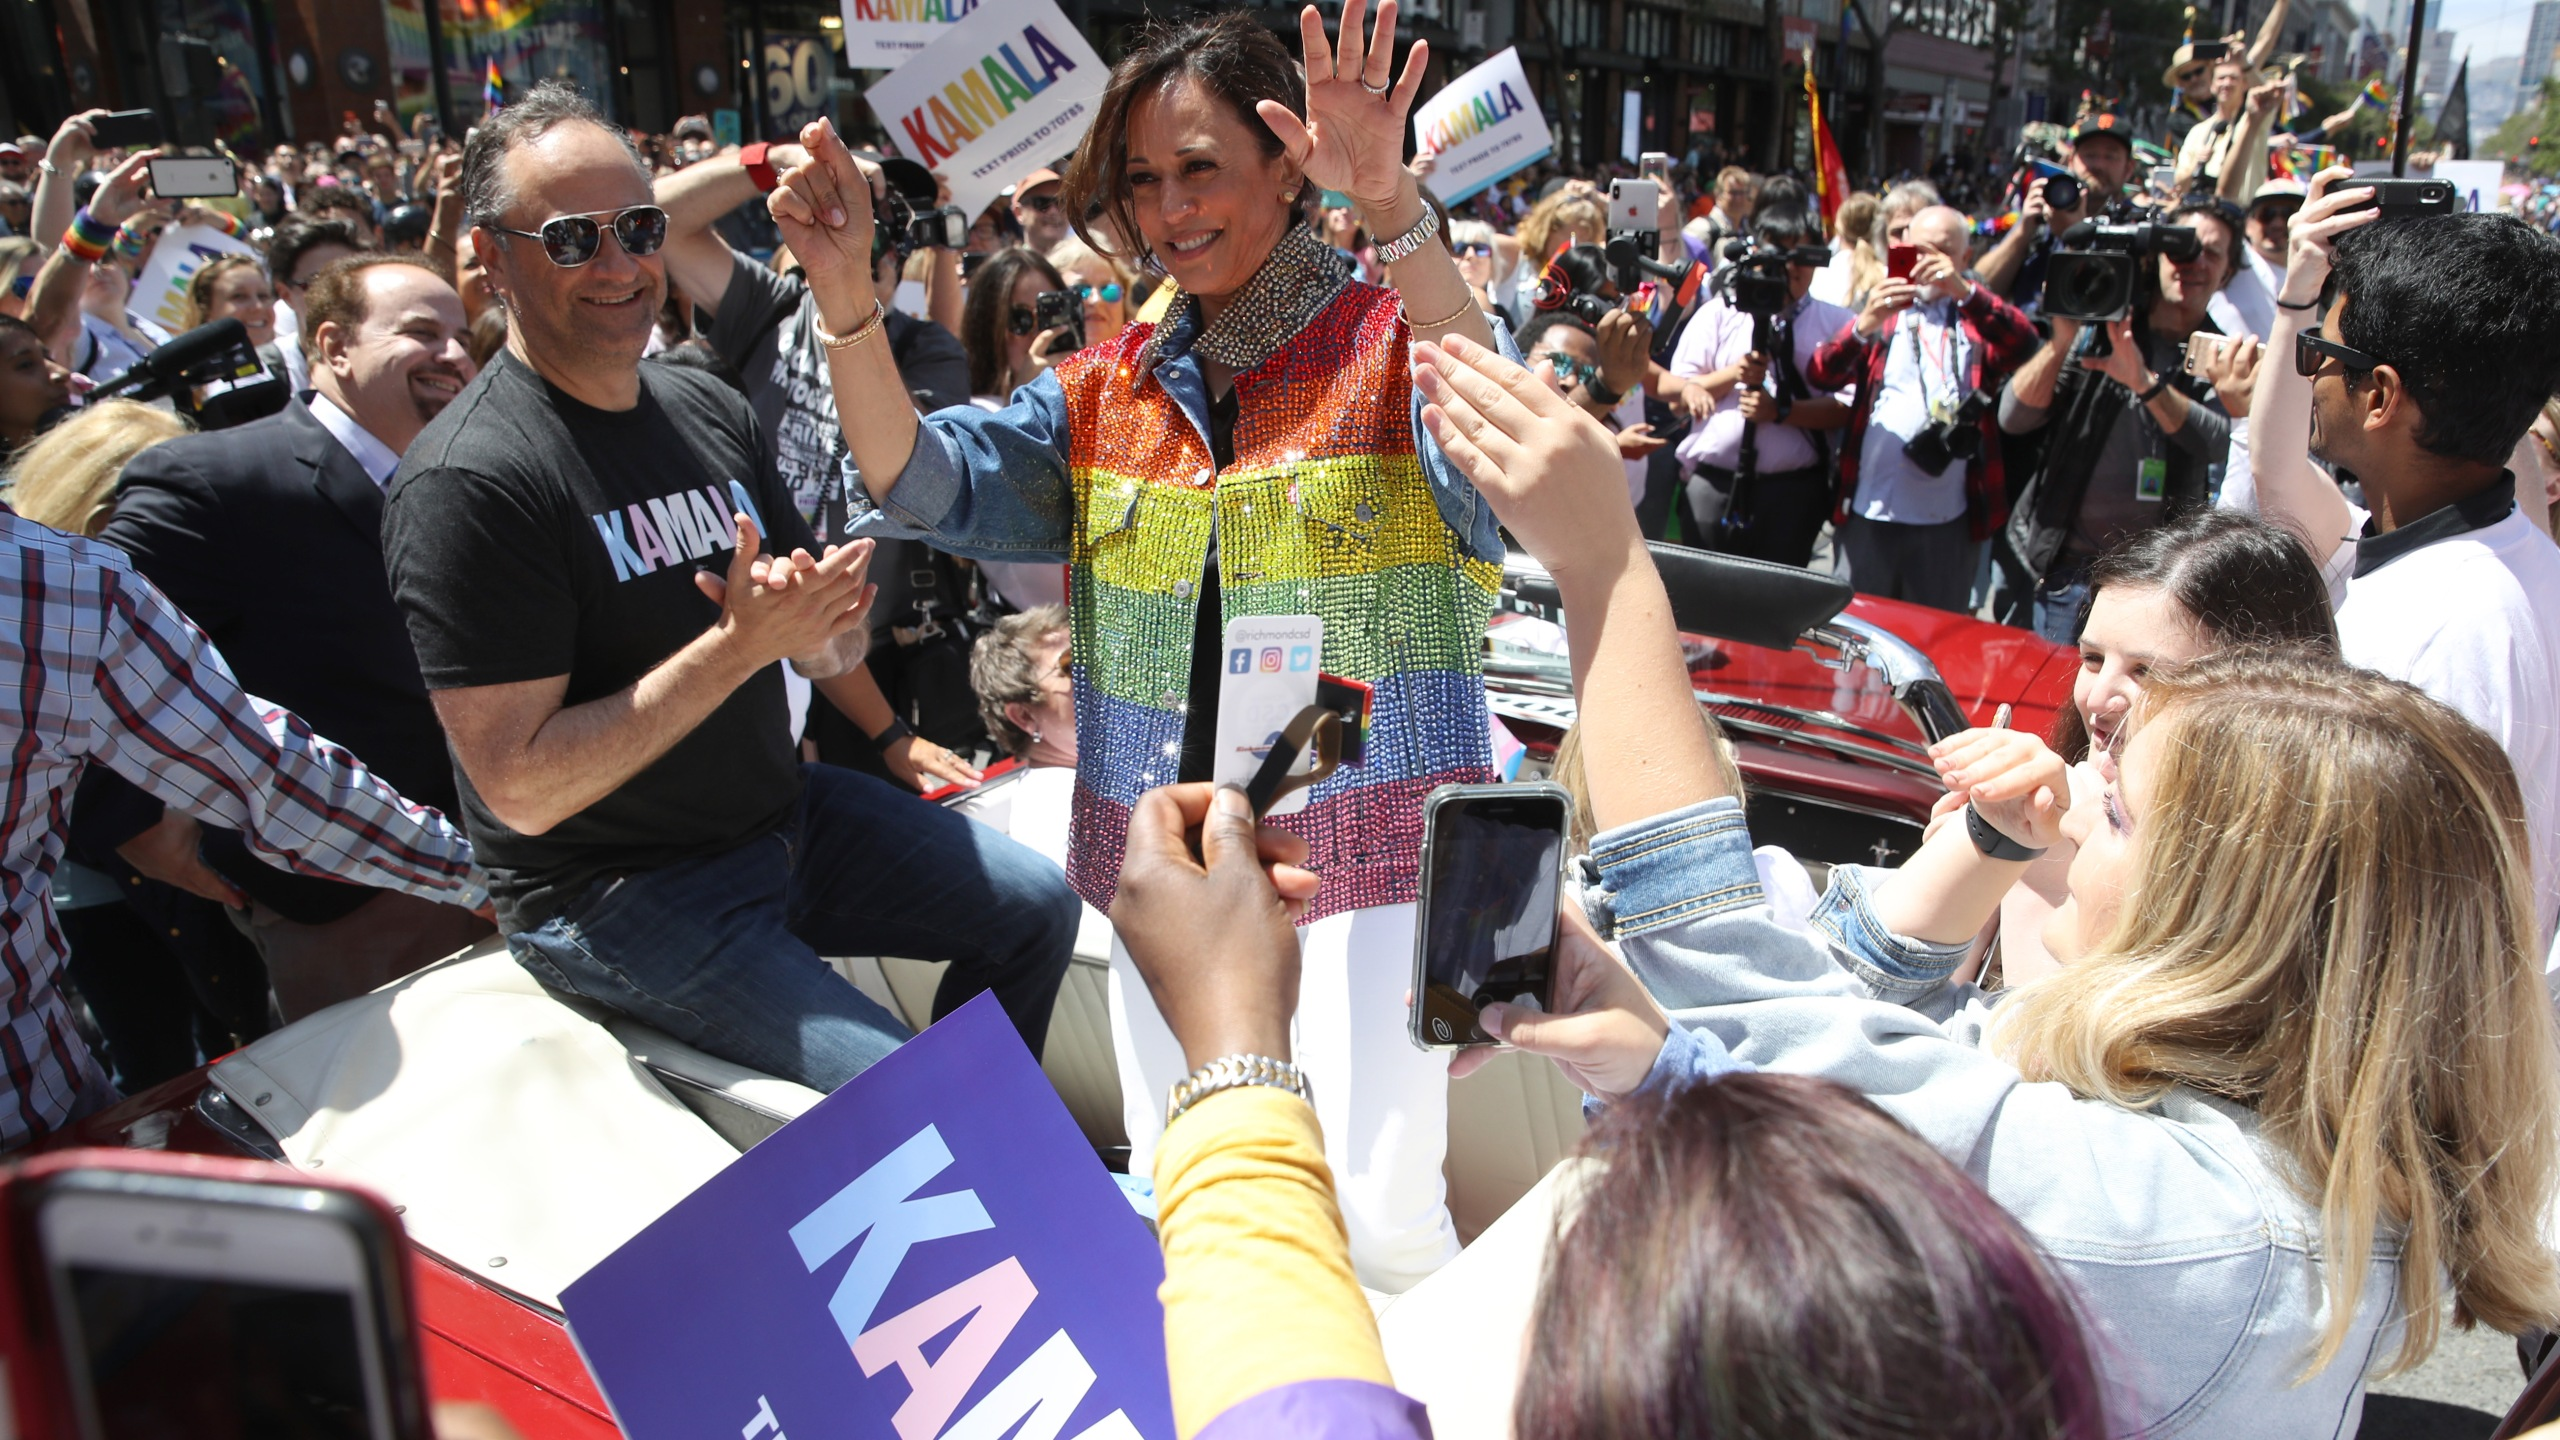 Democratic presidential candidate U.S. Sen. Kamala Harris (D-CA) waves as she rides in a car during the San Francisco Pride Parade on June 30, 2019. (Credit: Justin Sullivan/Getty Images)